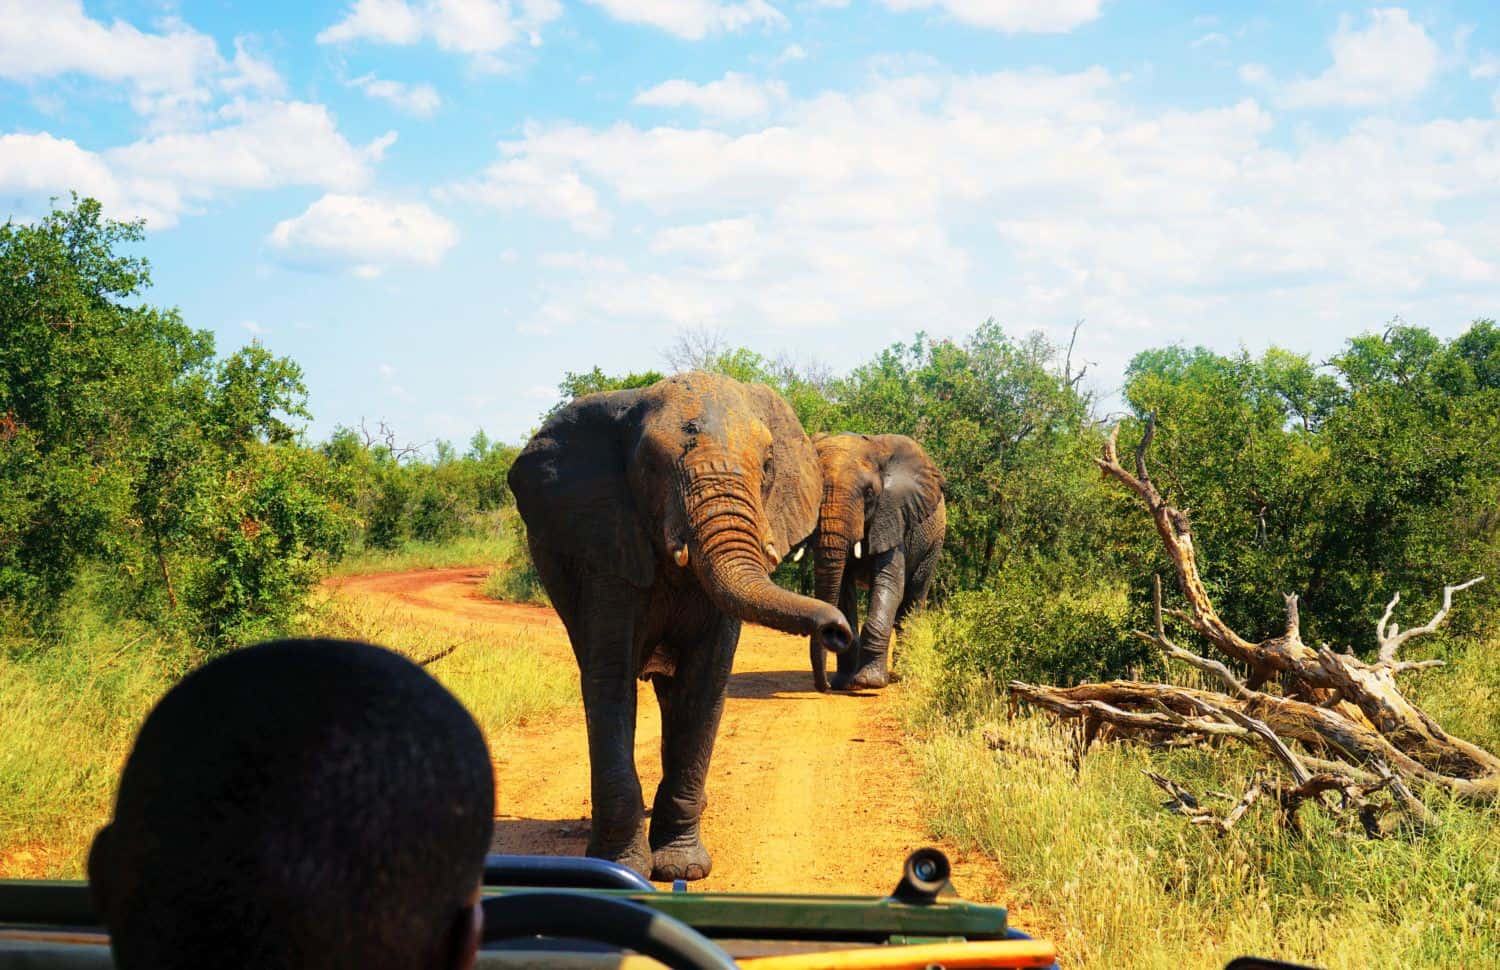 Elephants in Hlane National Park